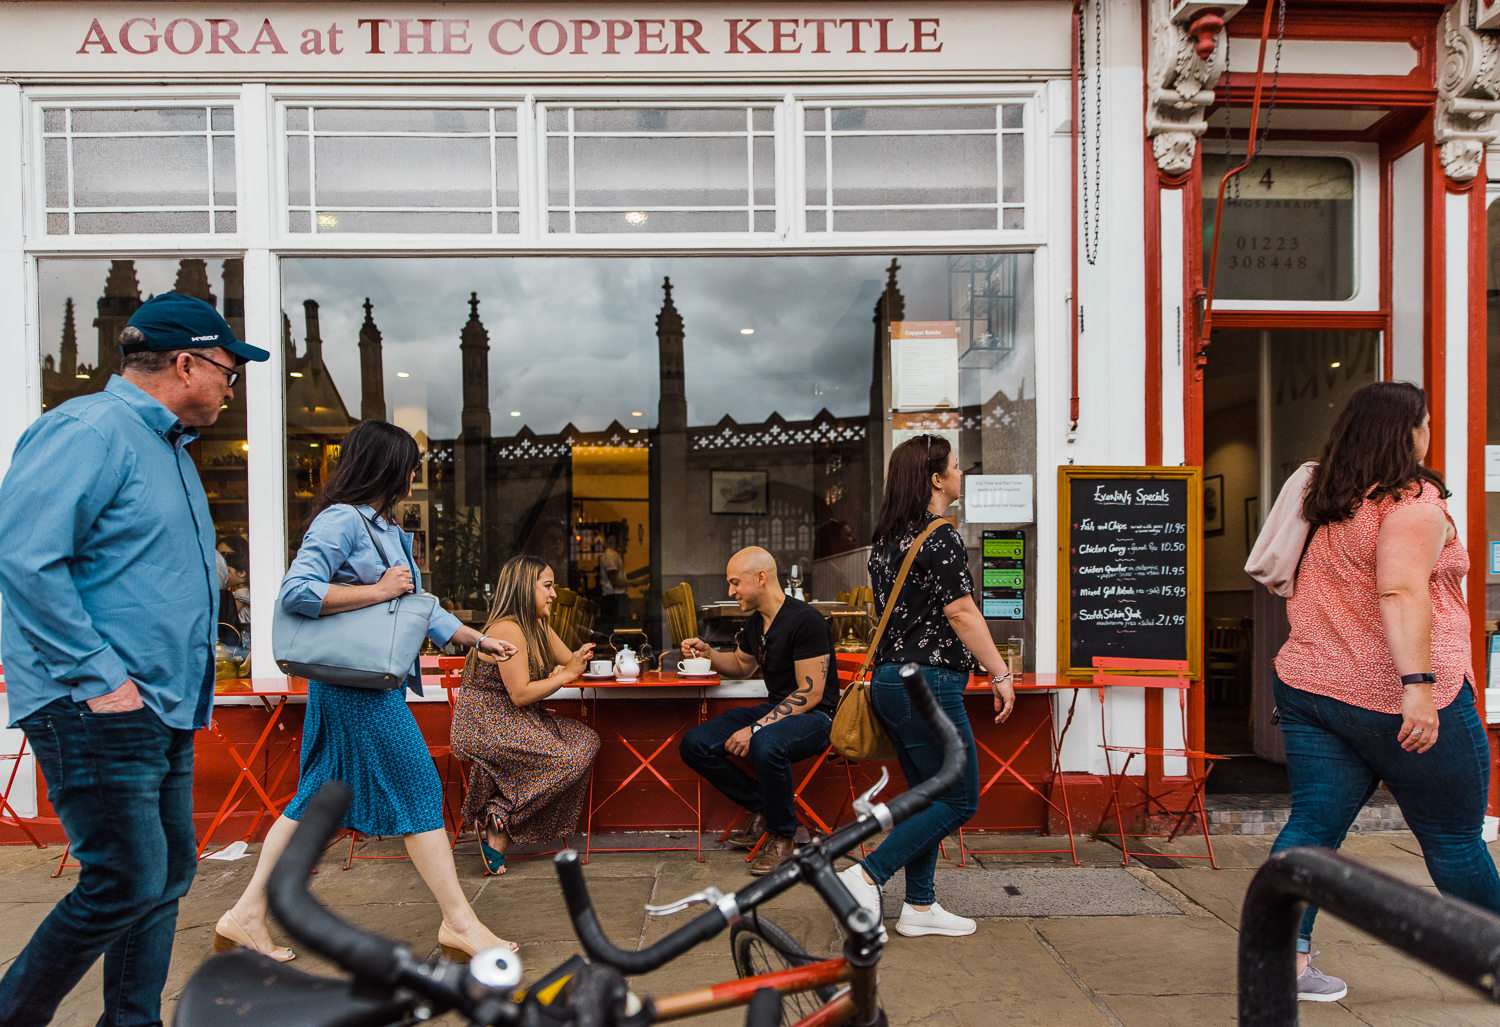 A couple sits outside drinking tea at The Copper Kettle in Cambridge as people walk by